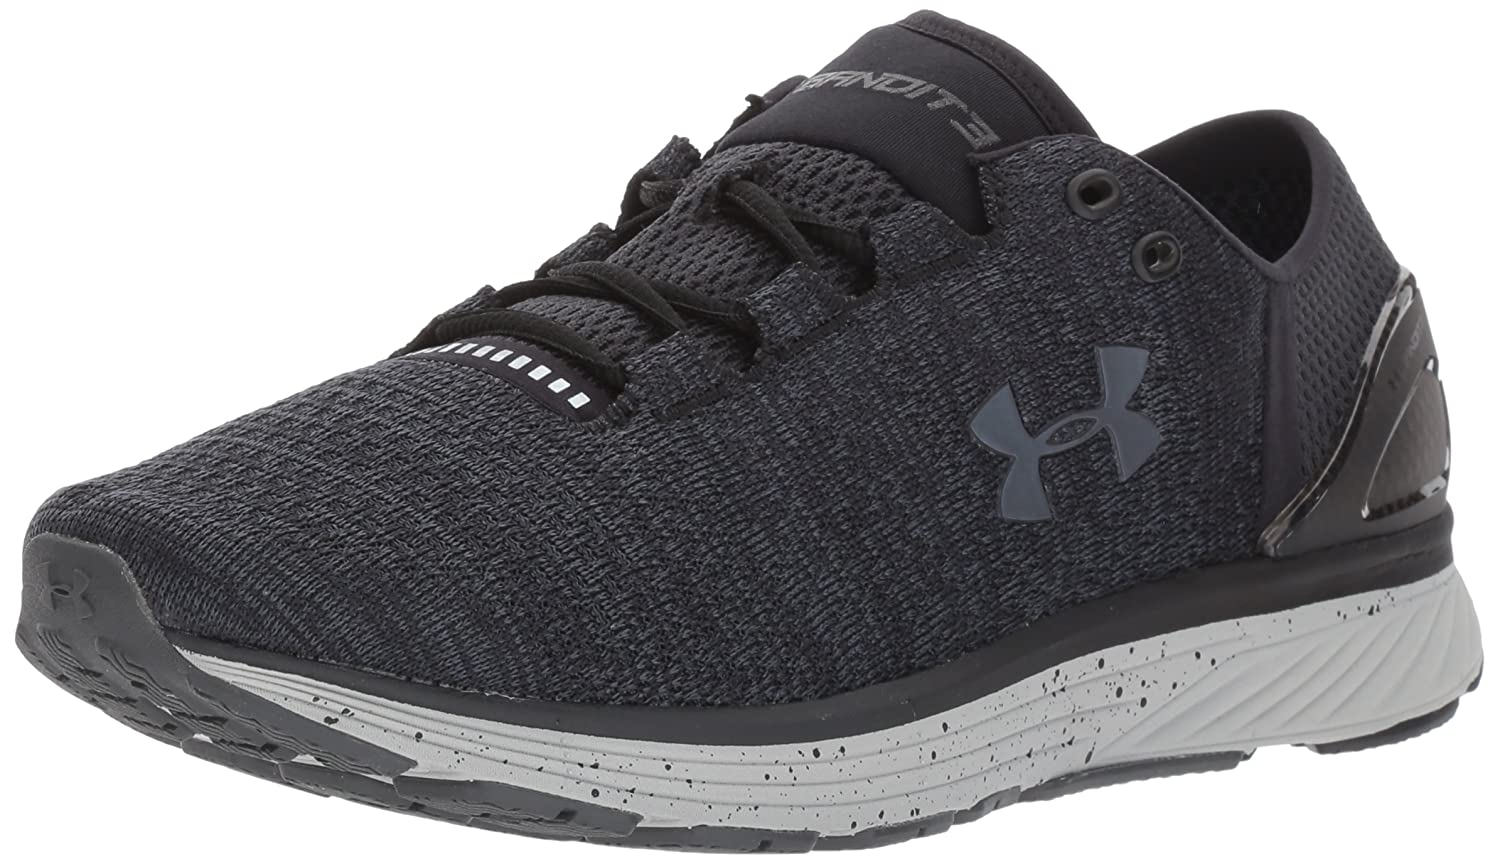 low priced 27813 84bae Amazon.com   Under Armour Women s Charged Bandit 3 D Running Shoe Black  (001) Glacier Gray 5   Road Running